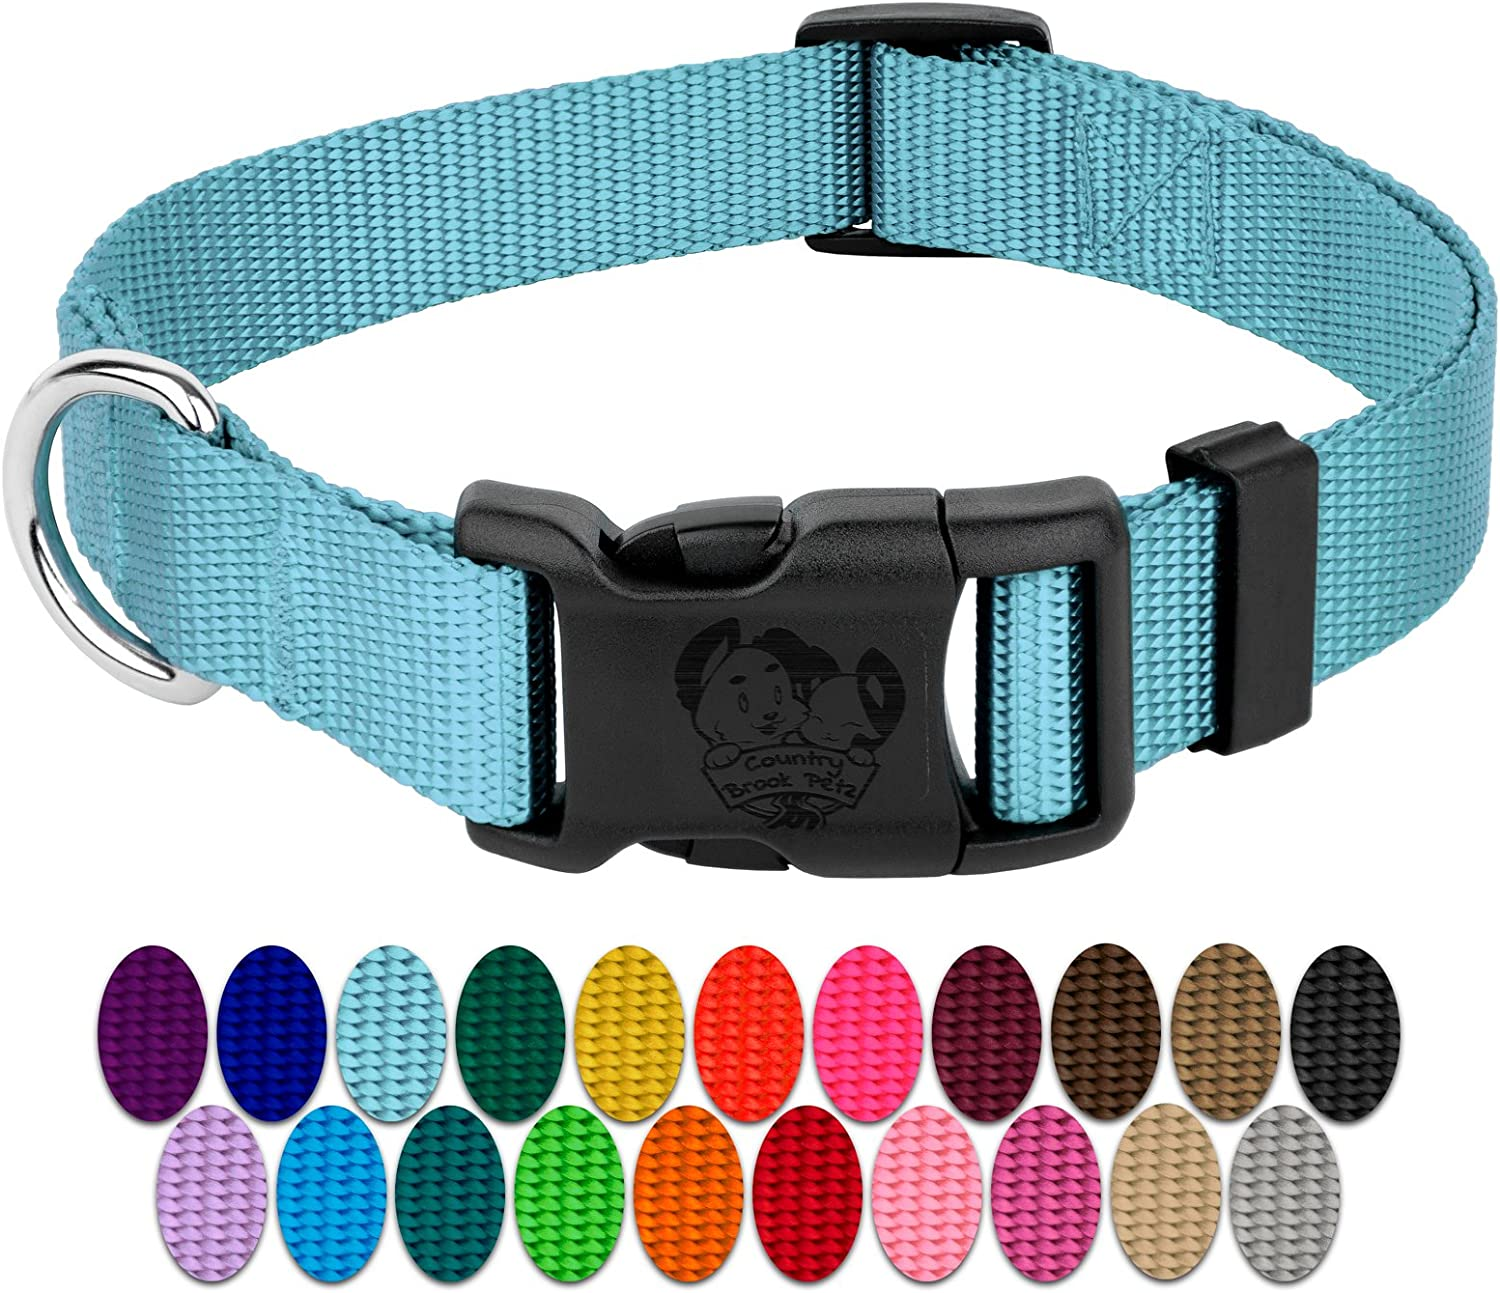 Country Brook Petz   Vibrant 23 color Selection   Deluxe Nylon Dog Collar (Large, 1 Inch Wide)